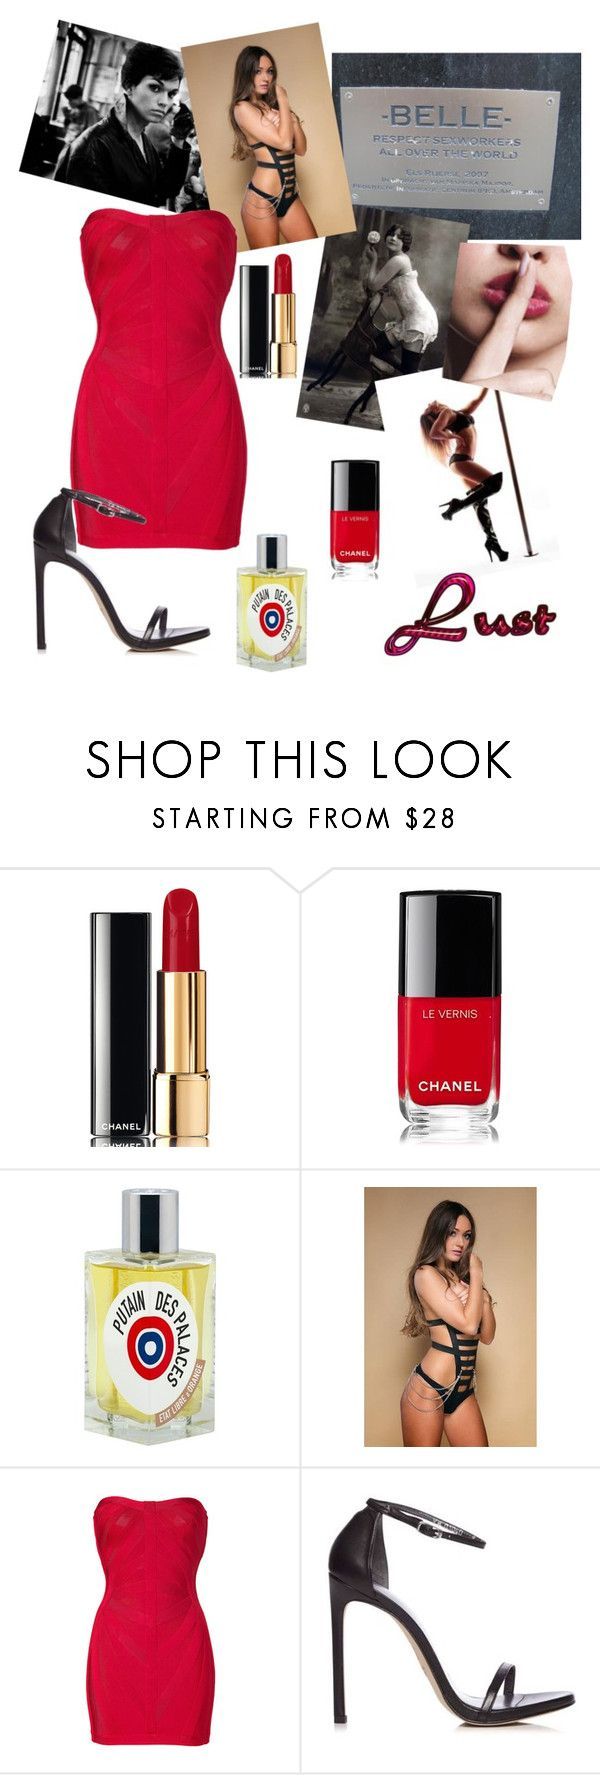 """Lust"" by confusioninme ❤ liked on Polyvore featuring Chanel, Etat Libre D'Orange, Hervé Léger and Stuart Weitzman"